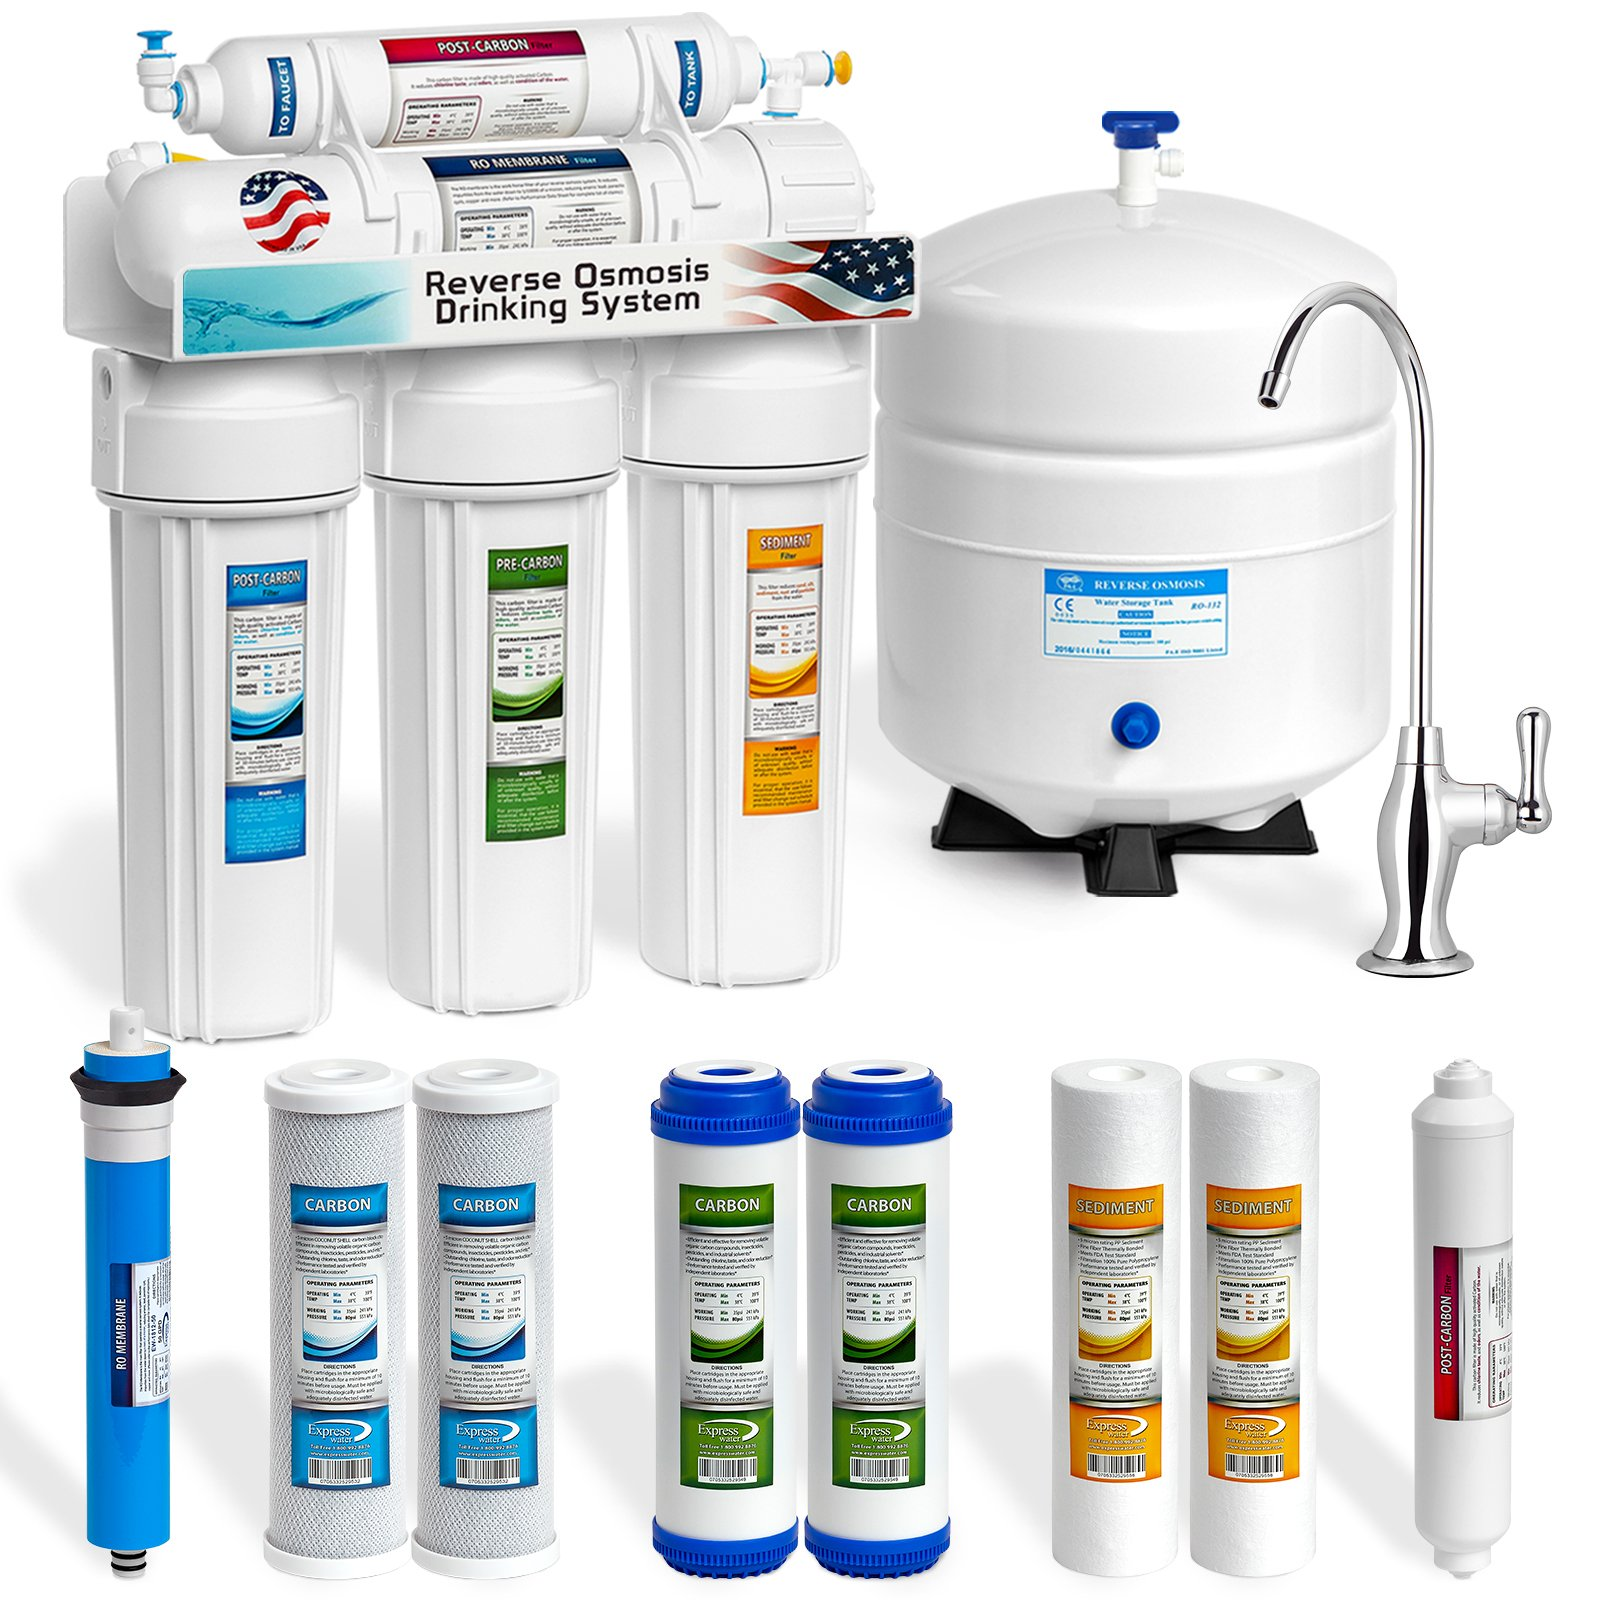 Express Water 5-Stage Undersink Water Filter System Reverse Osmosis Filtration +4 Extra Filter 50 GPD- RO5DX